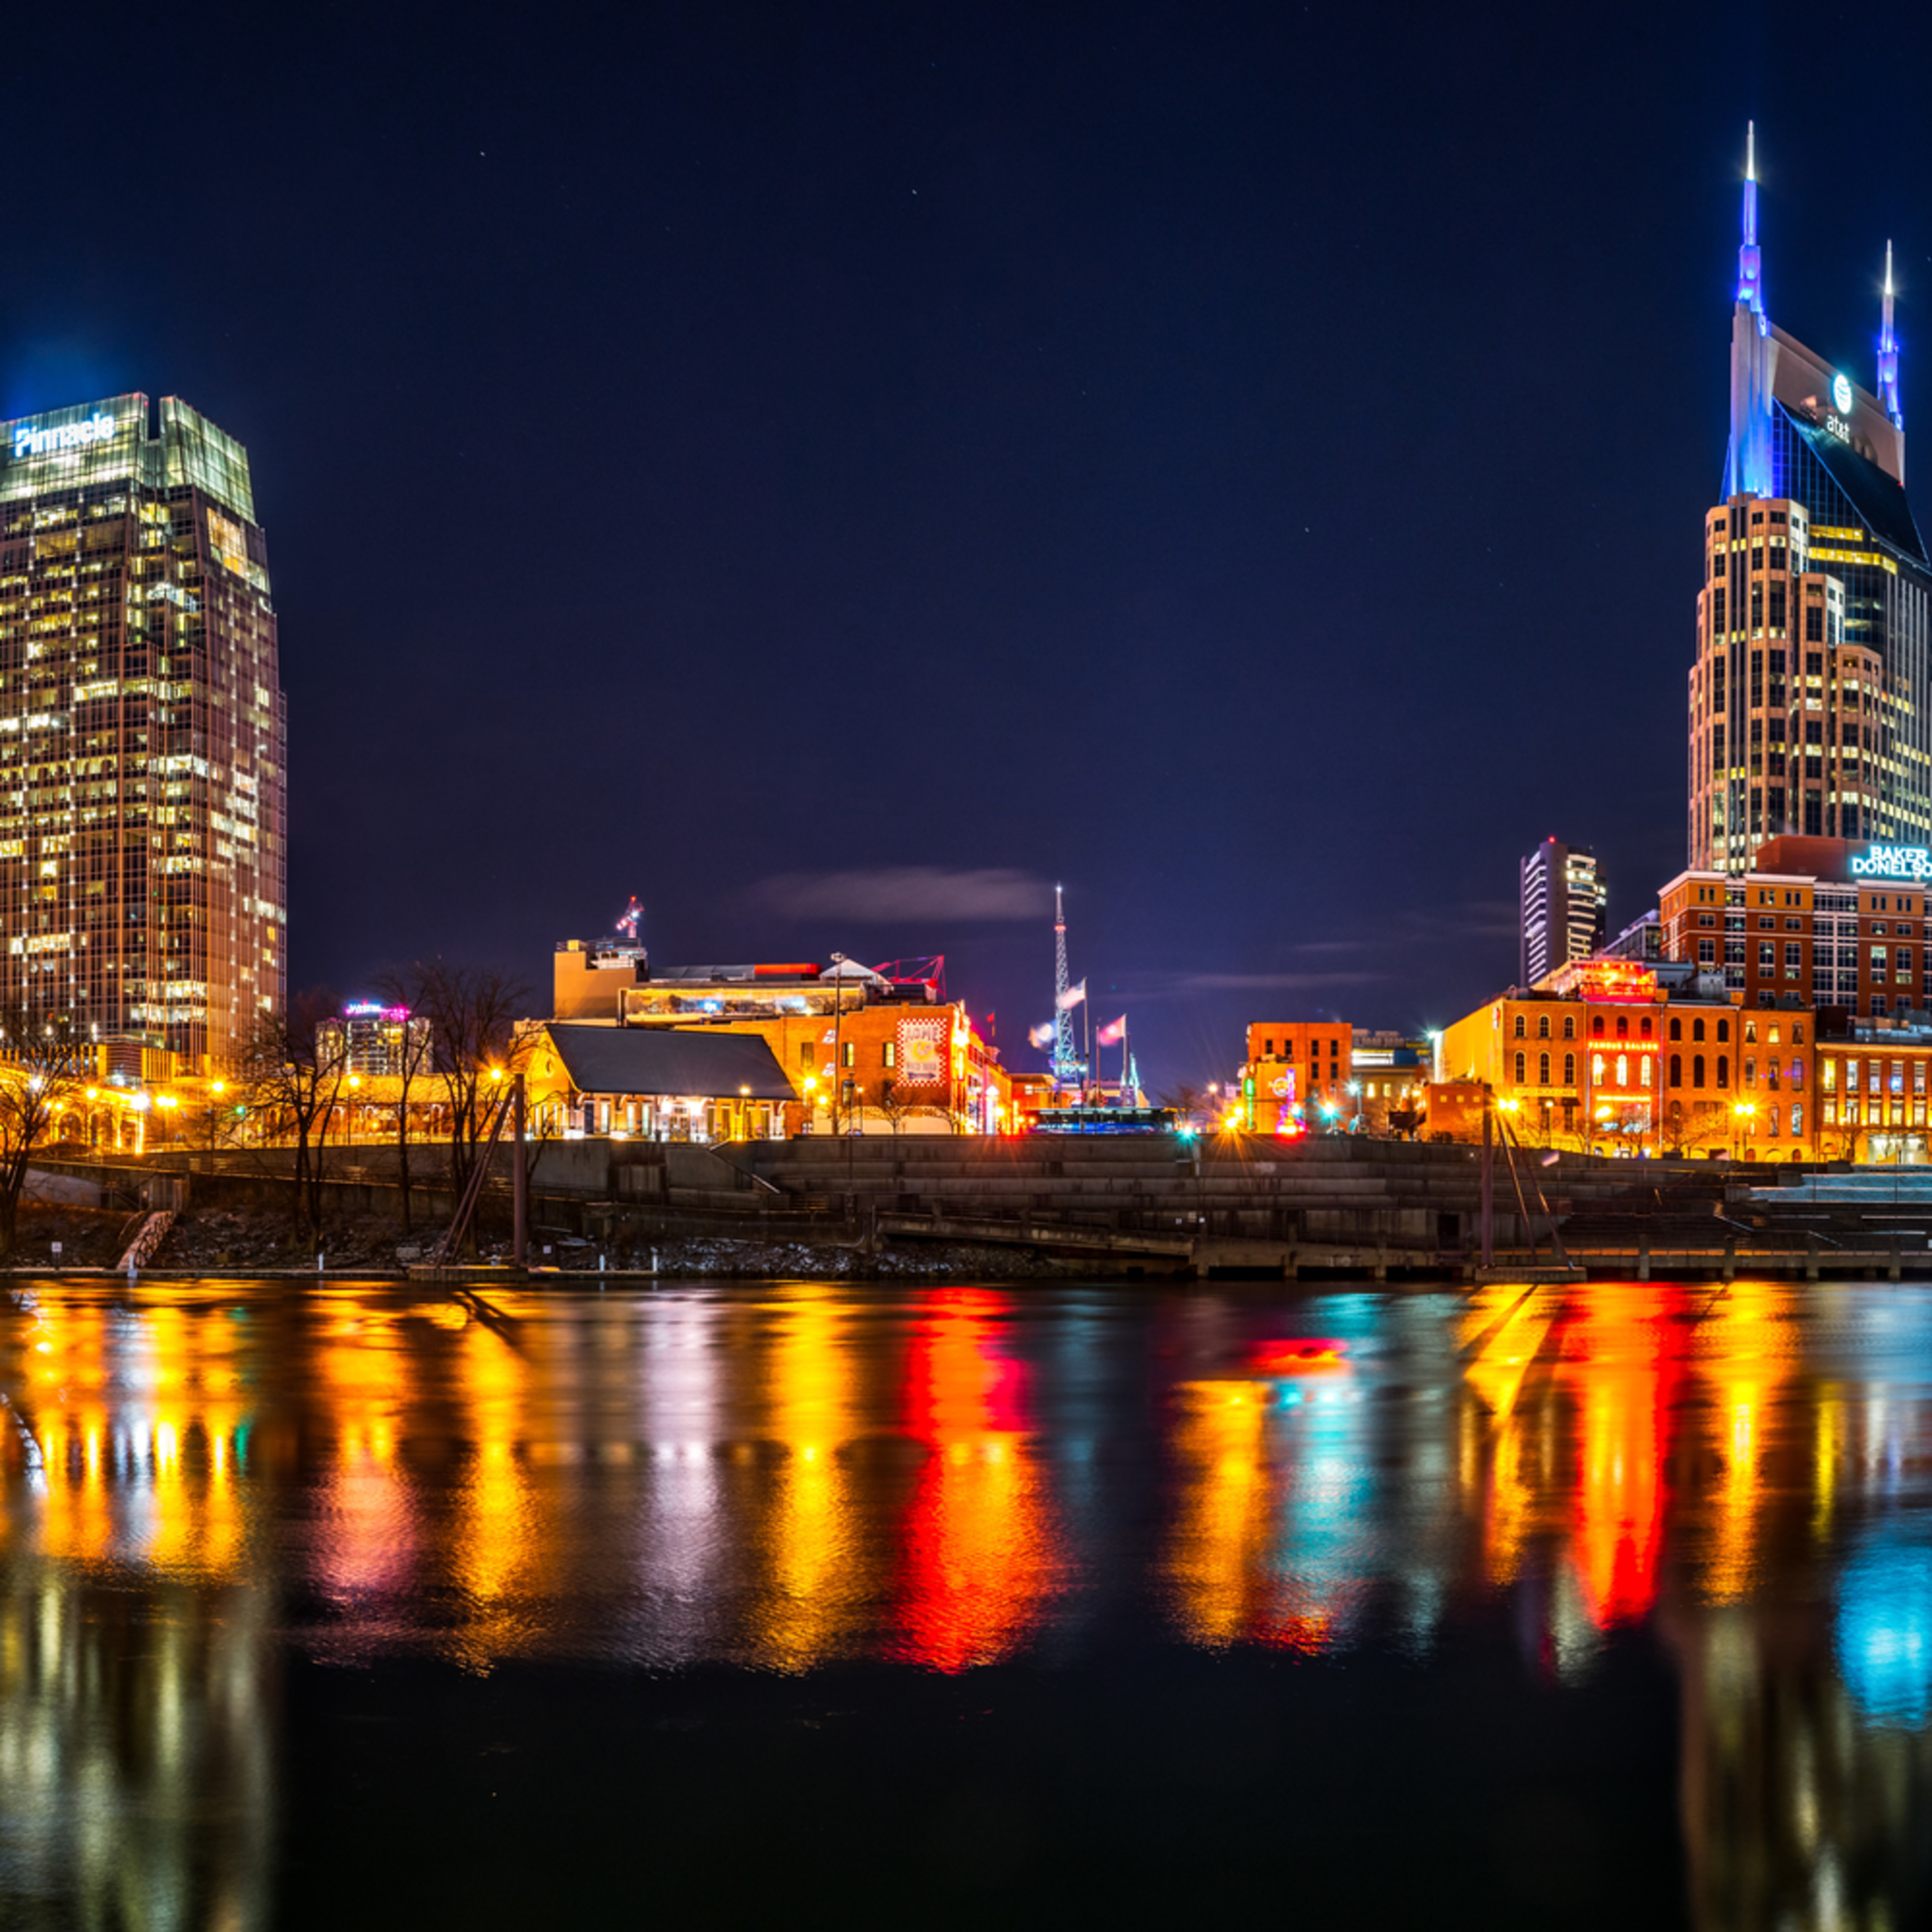 Andy crawford photography nashville skyline 20180113 1 d3ojyc